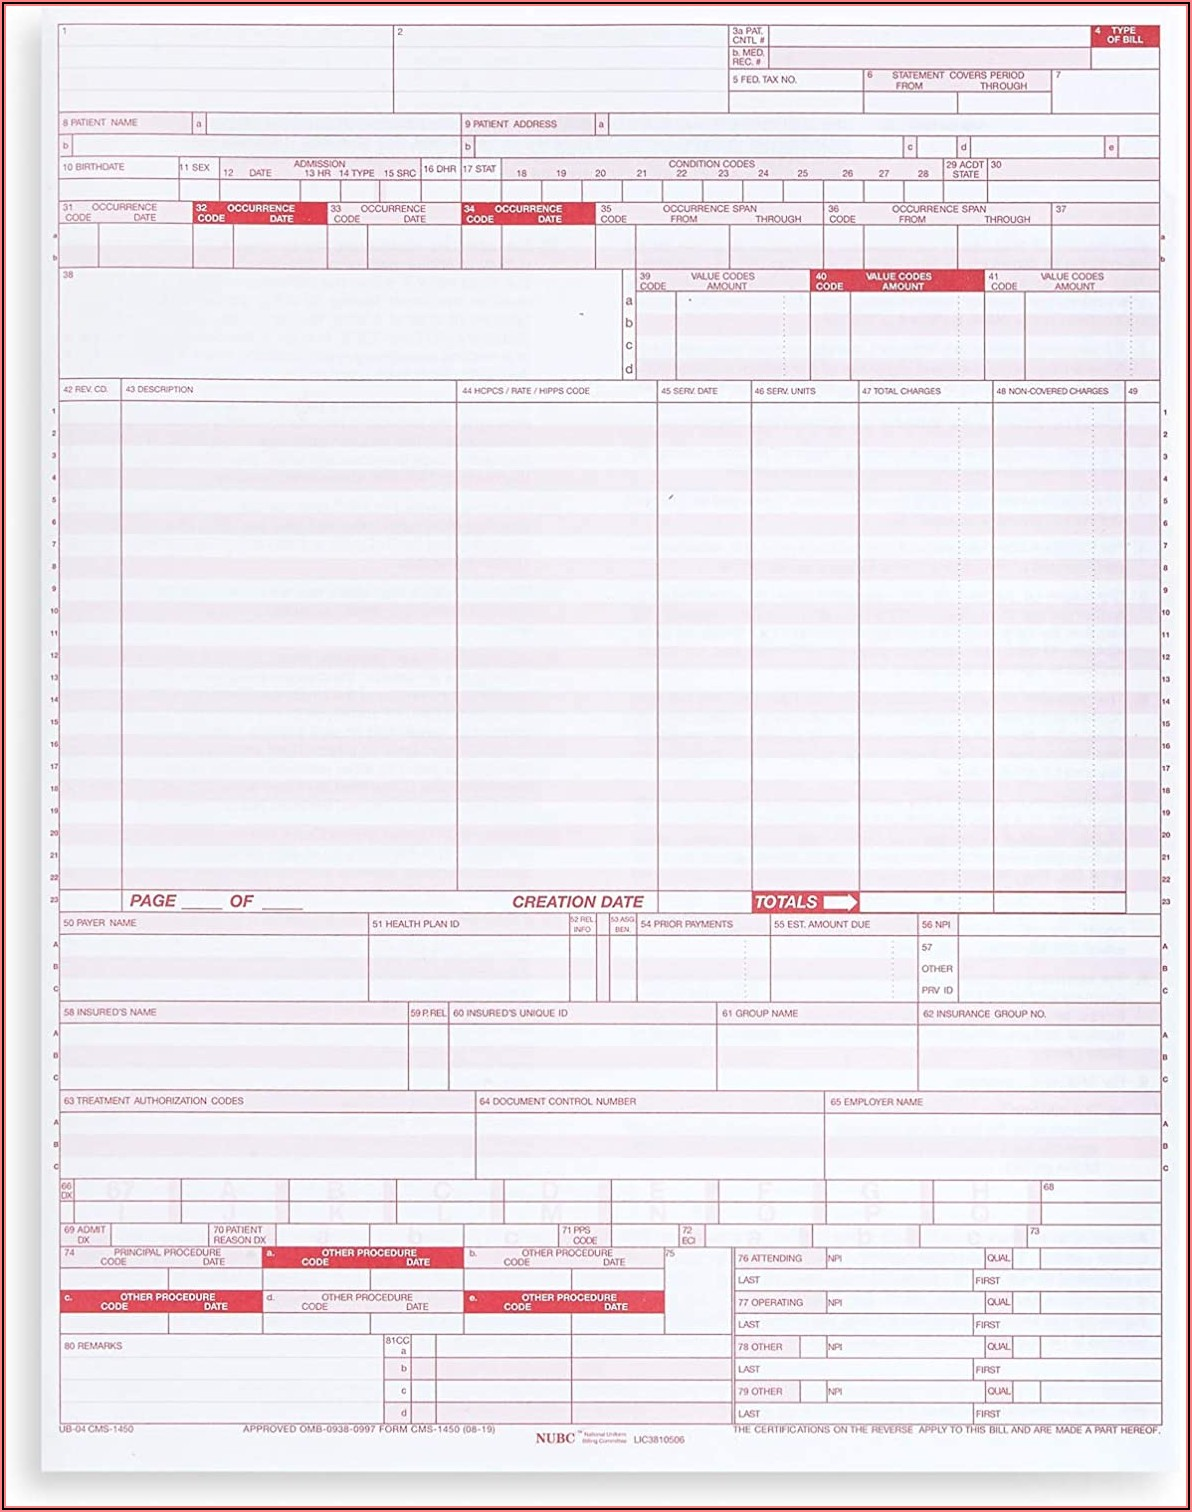 The Cms 1500 And Ub 04 Claim Forms Are Required To Be Outlined In Red To